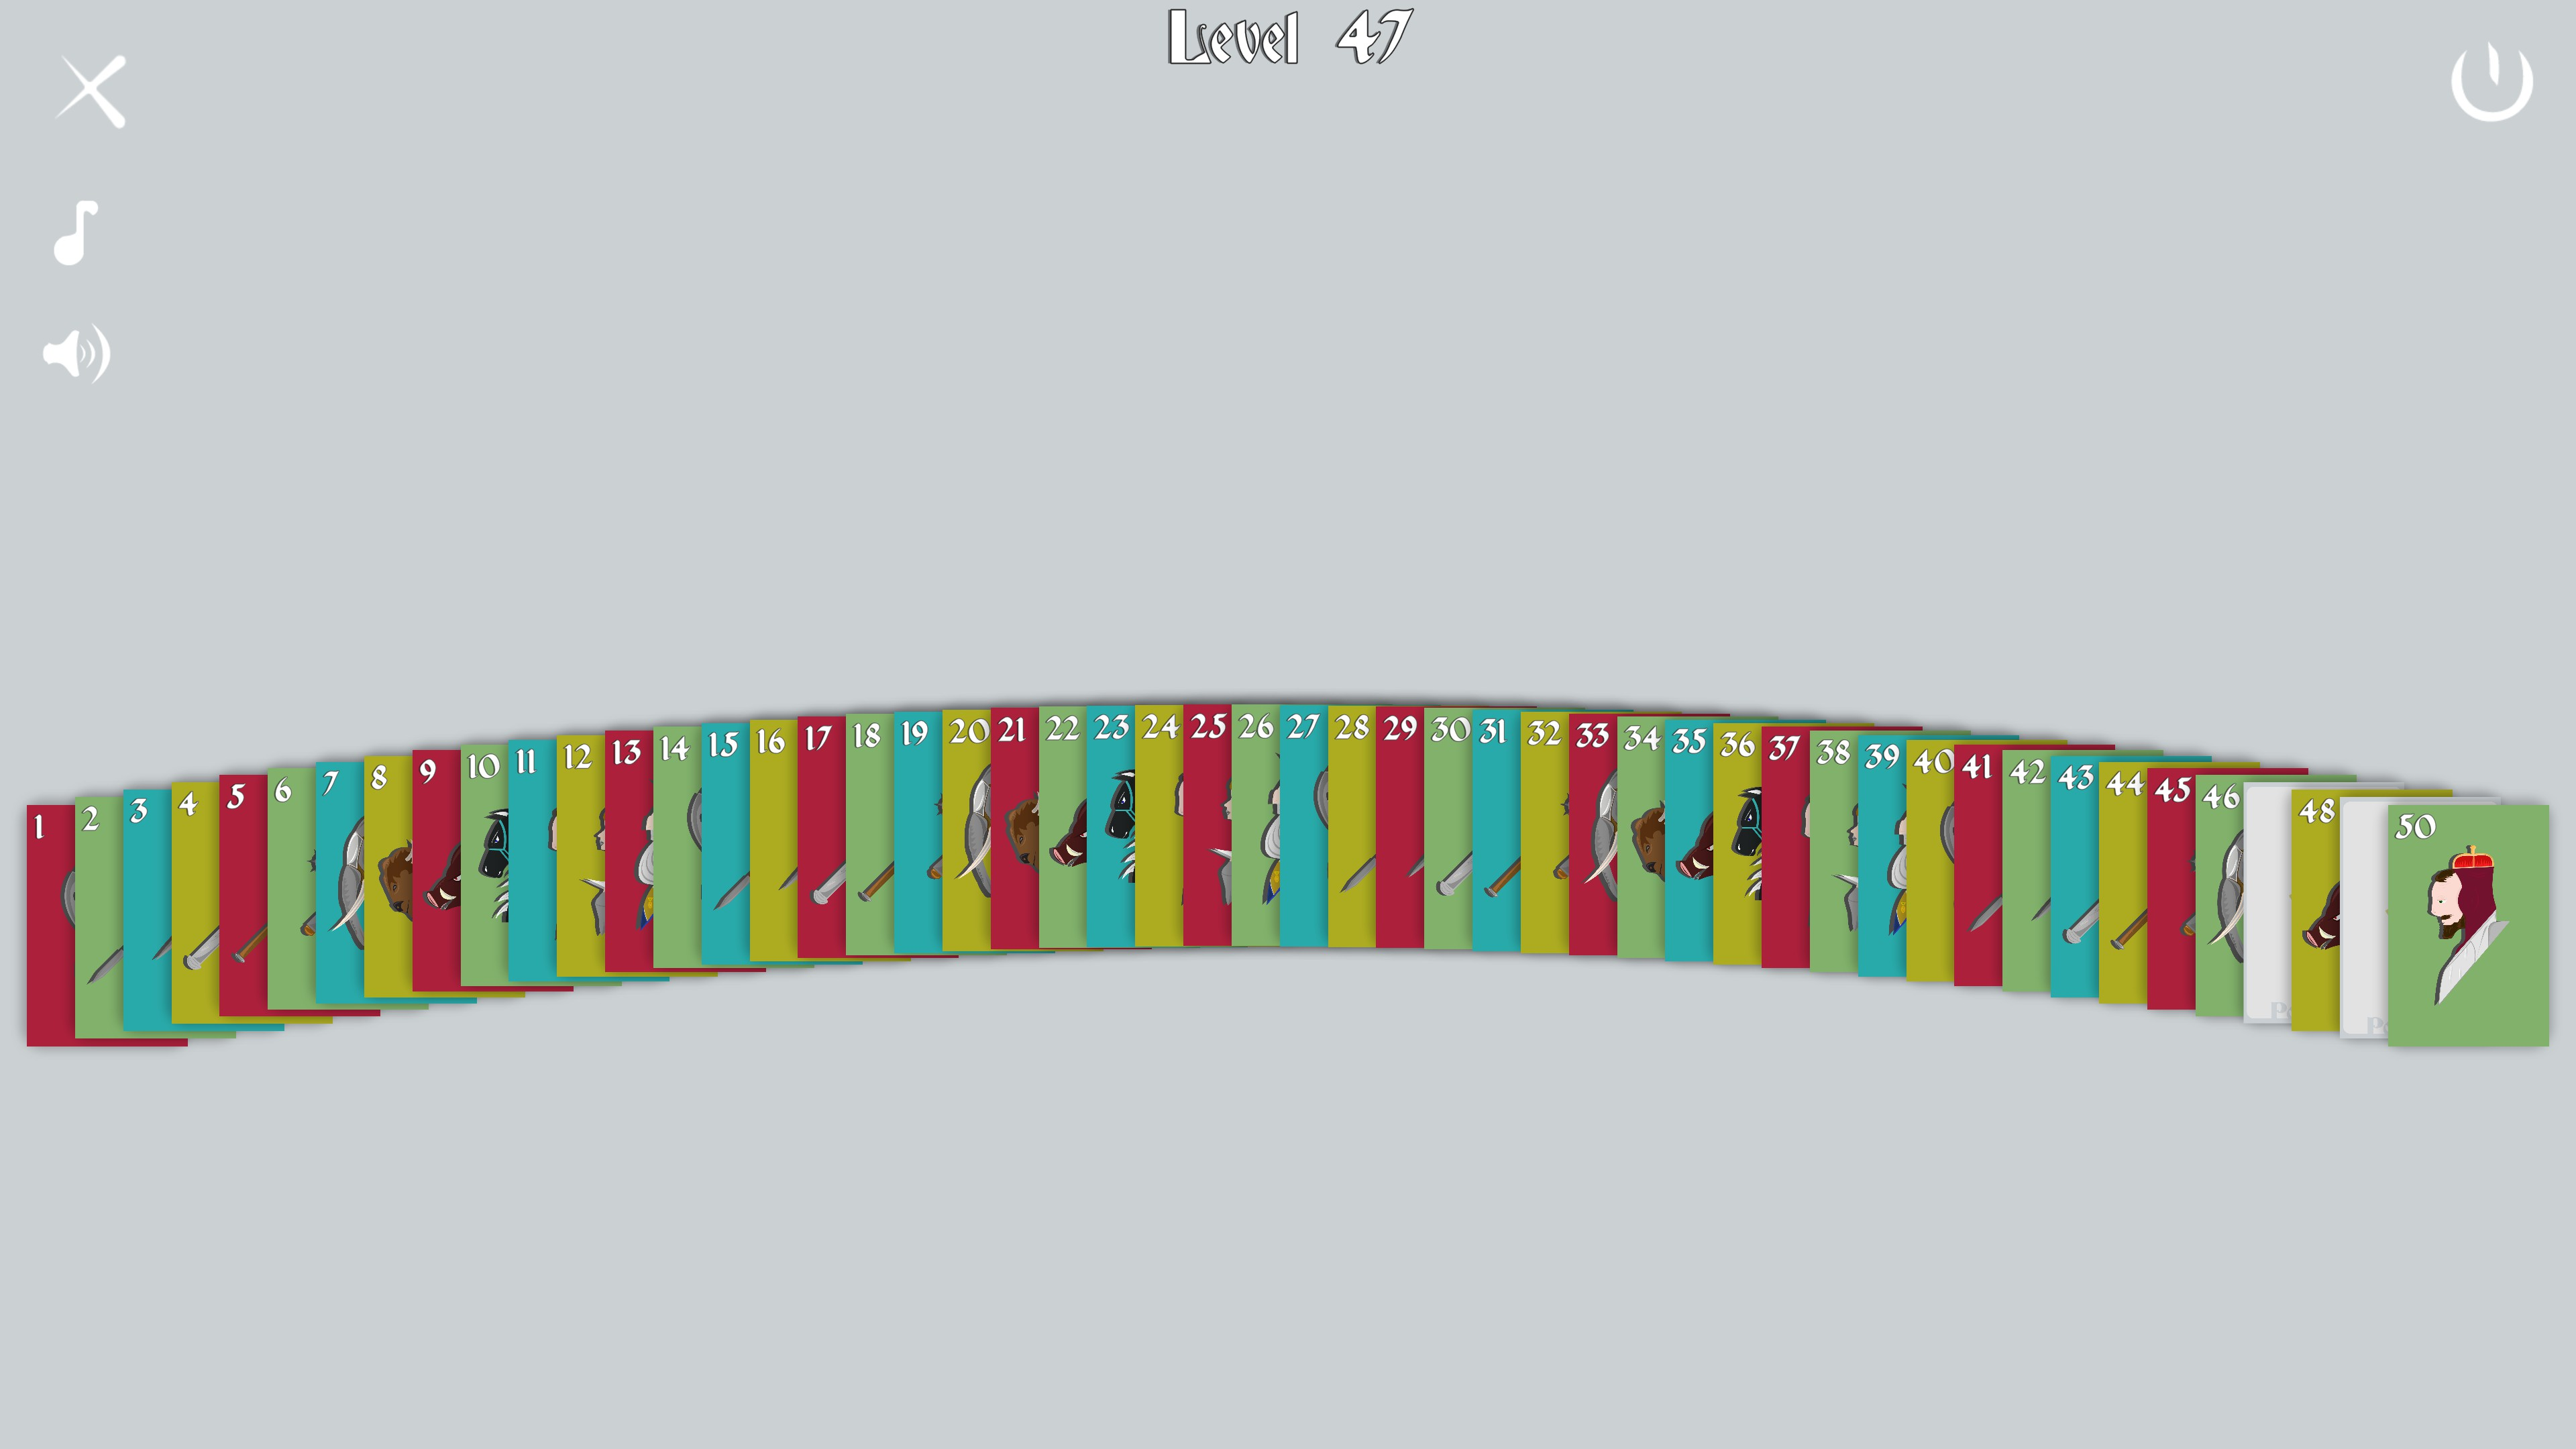 Poker Hands. Level select with levels 47 and 49 as empty grey boxes